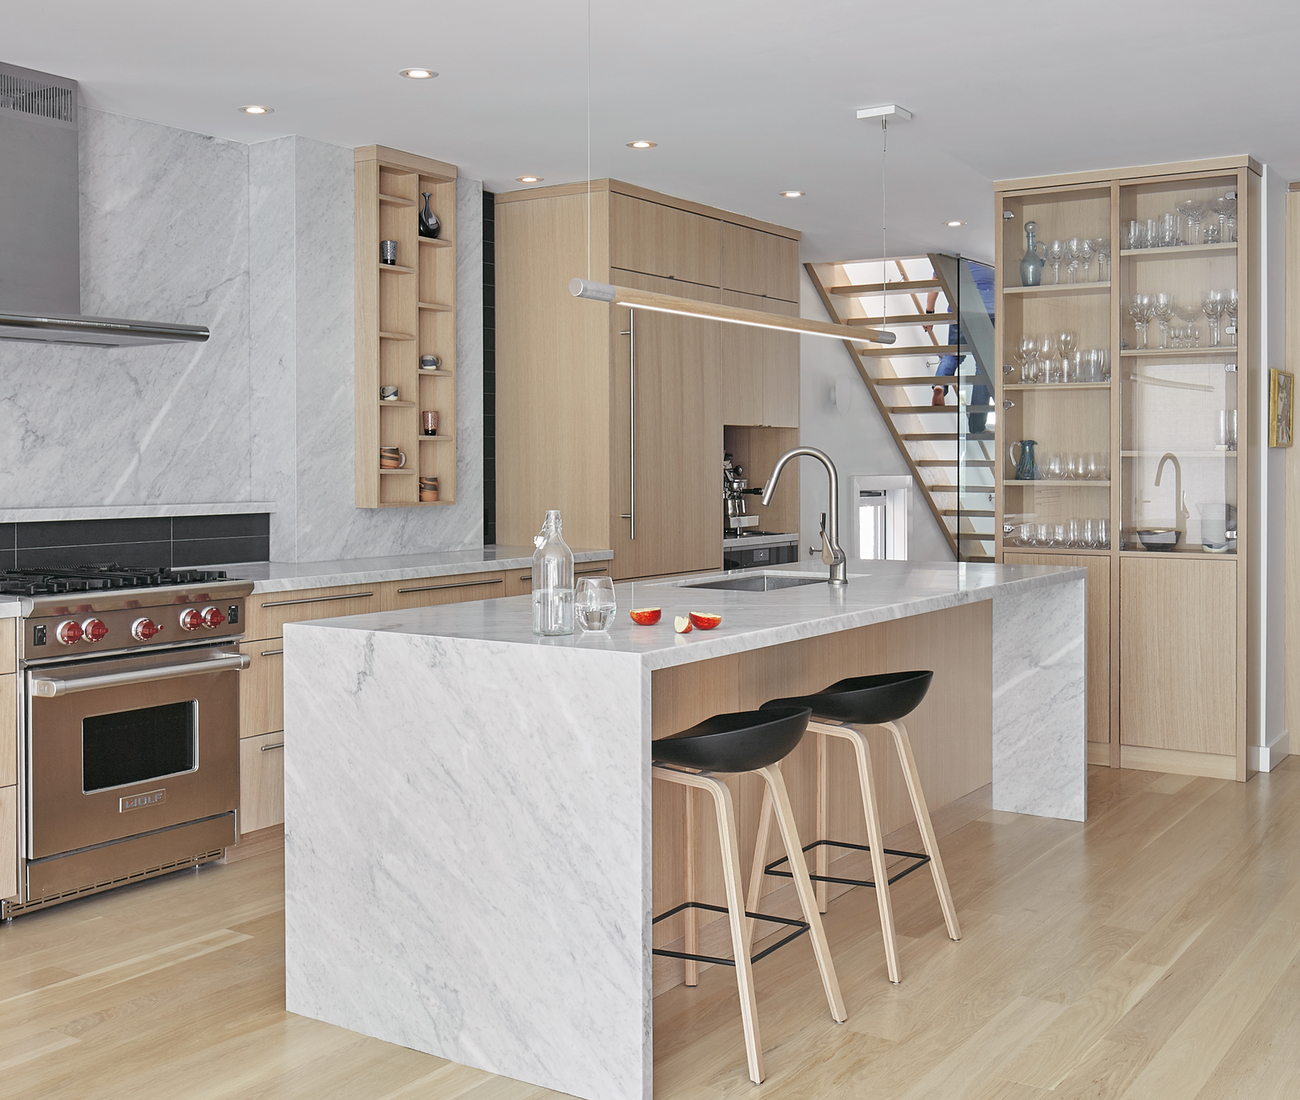 The kitchen in House of Louis, a North Toronto renovation by Asquith Architects